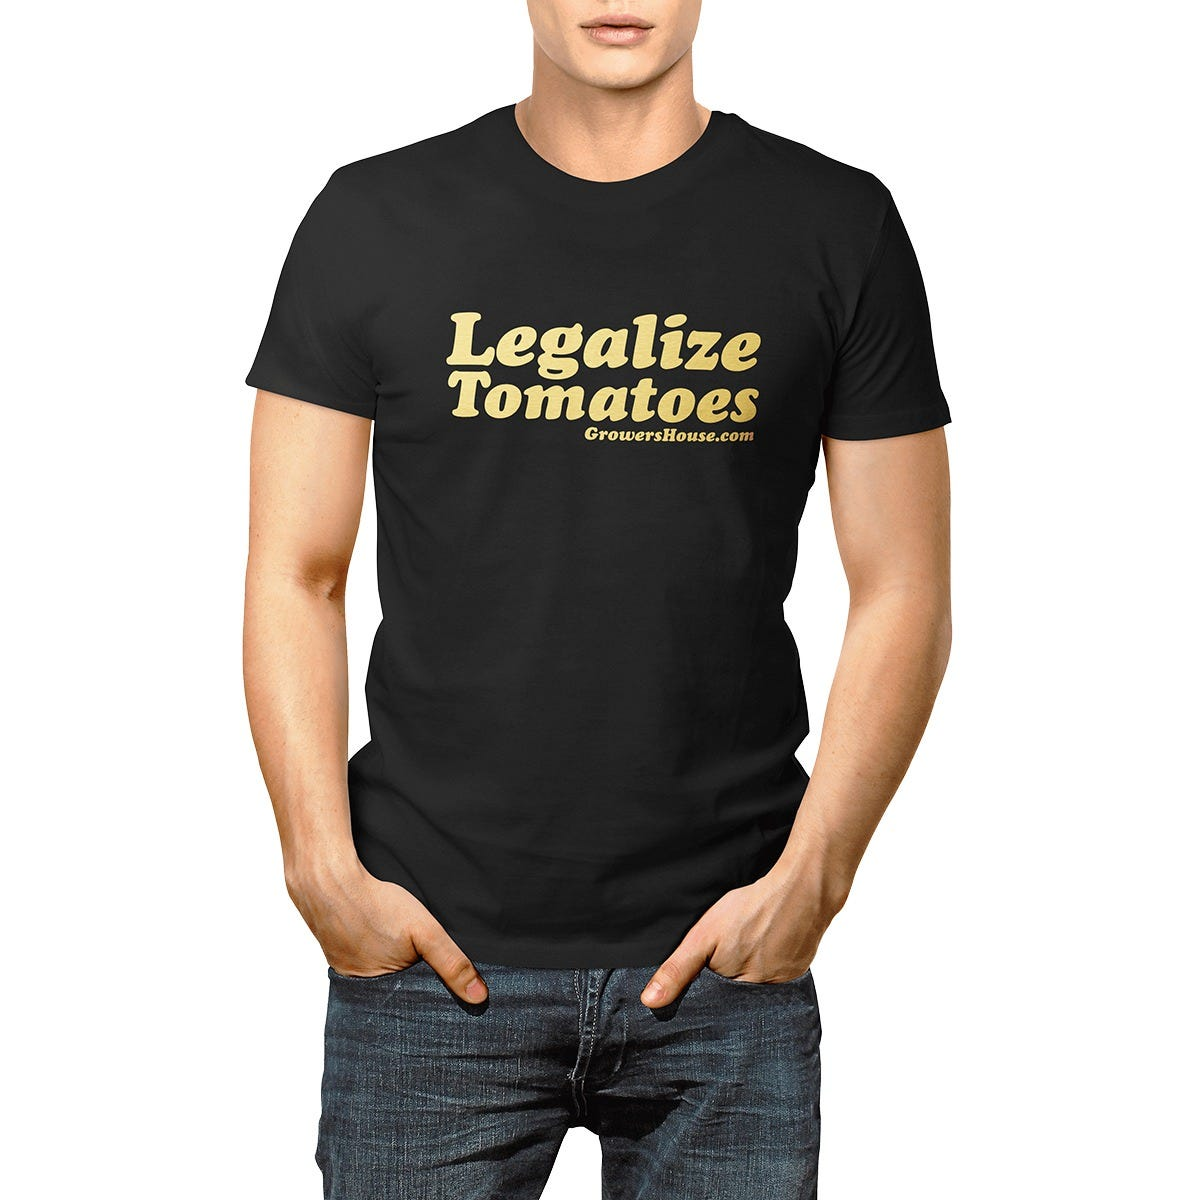 Growers House Legalize Tomatoes T-Shirt - Gold on Black Metallic Gold on Black Show your One Love, for Tomatoes! Make a statement with out saying... so many words. Represent the fruits of your labors while practicing on those tomato plants with our Official Growers House  Legalize Tomatoes  T-Shirt! Quality screen printed on Next Level Apparel, Premium Jersey, soft brushed, 60% Cotton 40% Polyester, Our guys say this is a  Classic Fit  style Tee. We shelled out for really nice premium jersey, its soft not like a cheap giveaway shirt. It is cut like a  Classic Fit  tee shirt, not boxy or oversized, and not  fitted . A very true to size shirt. If you like a looser fit we recommend you order the next size up. Check out the GH Teespring Store for even more color options and Woman's fit tees!